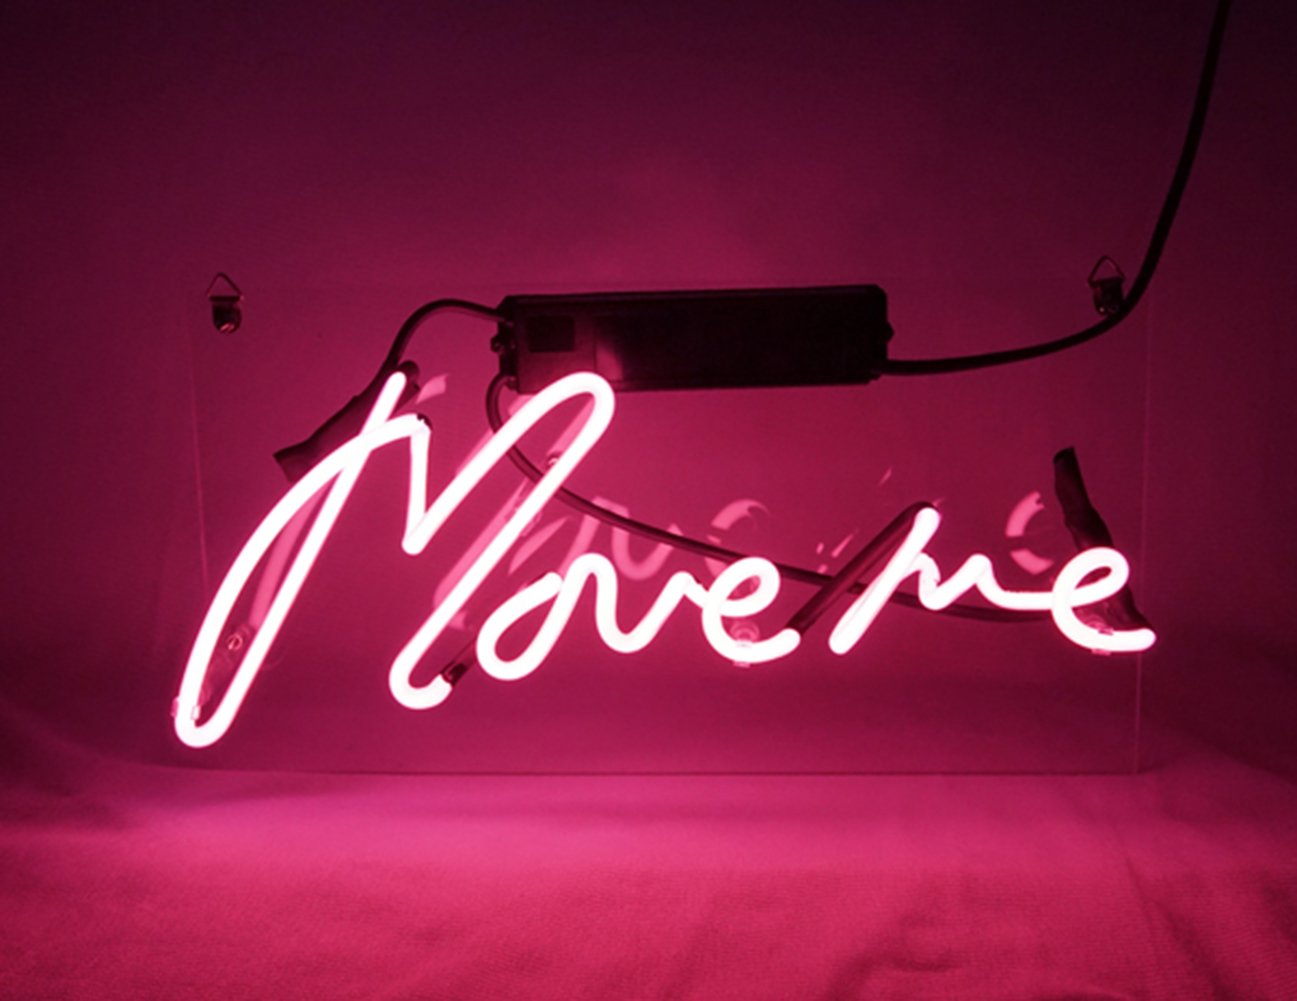 New Neon Sign Pink 'Move Me' Cool Led Lamp Light Decoration 12.6'' x 6.7'' For Home Beer bar Pub Hotel Beach Recreational Game Room